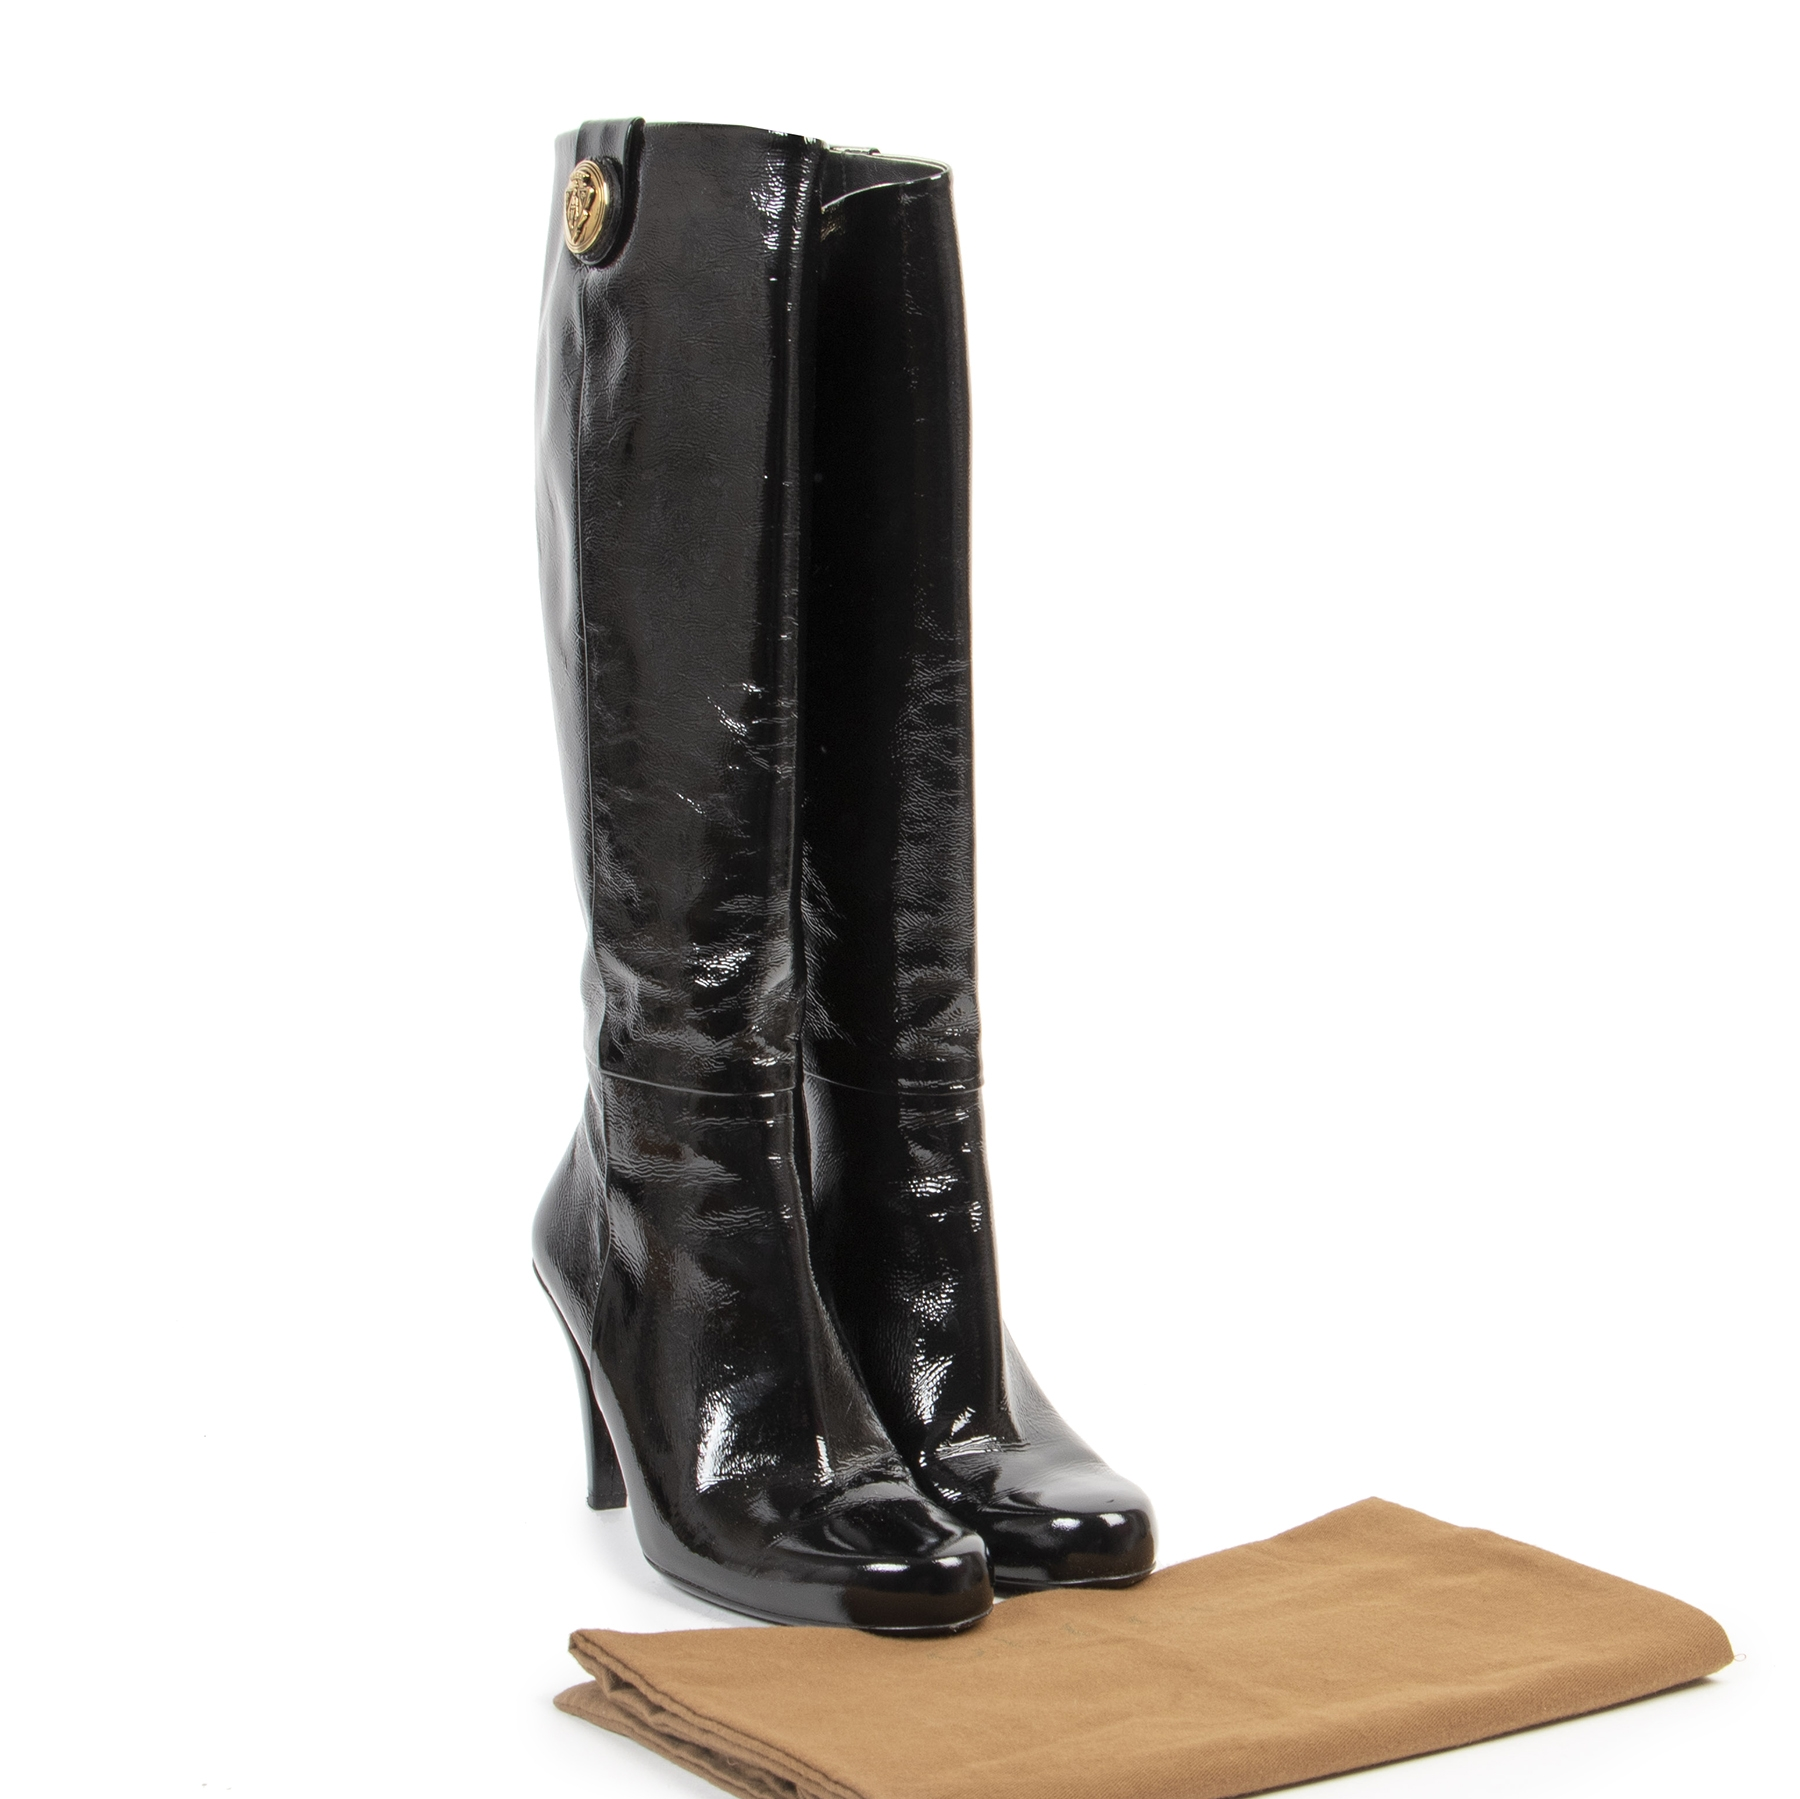 Buy and sell your authentic Gucci Black Patent Leather Knee Hight Boots